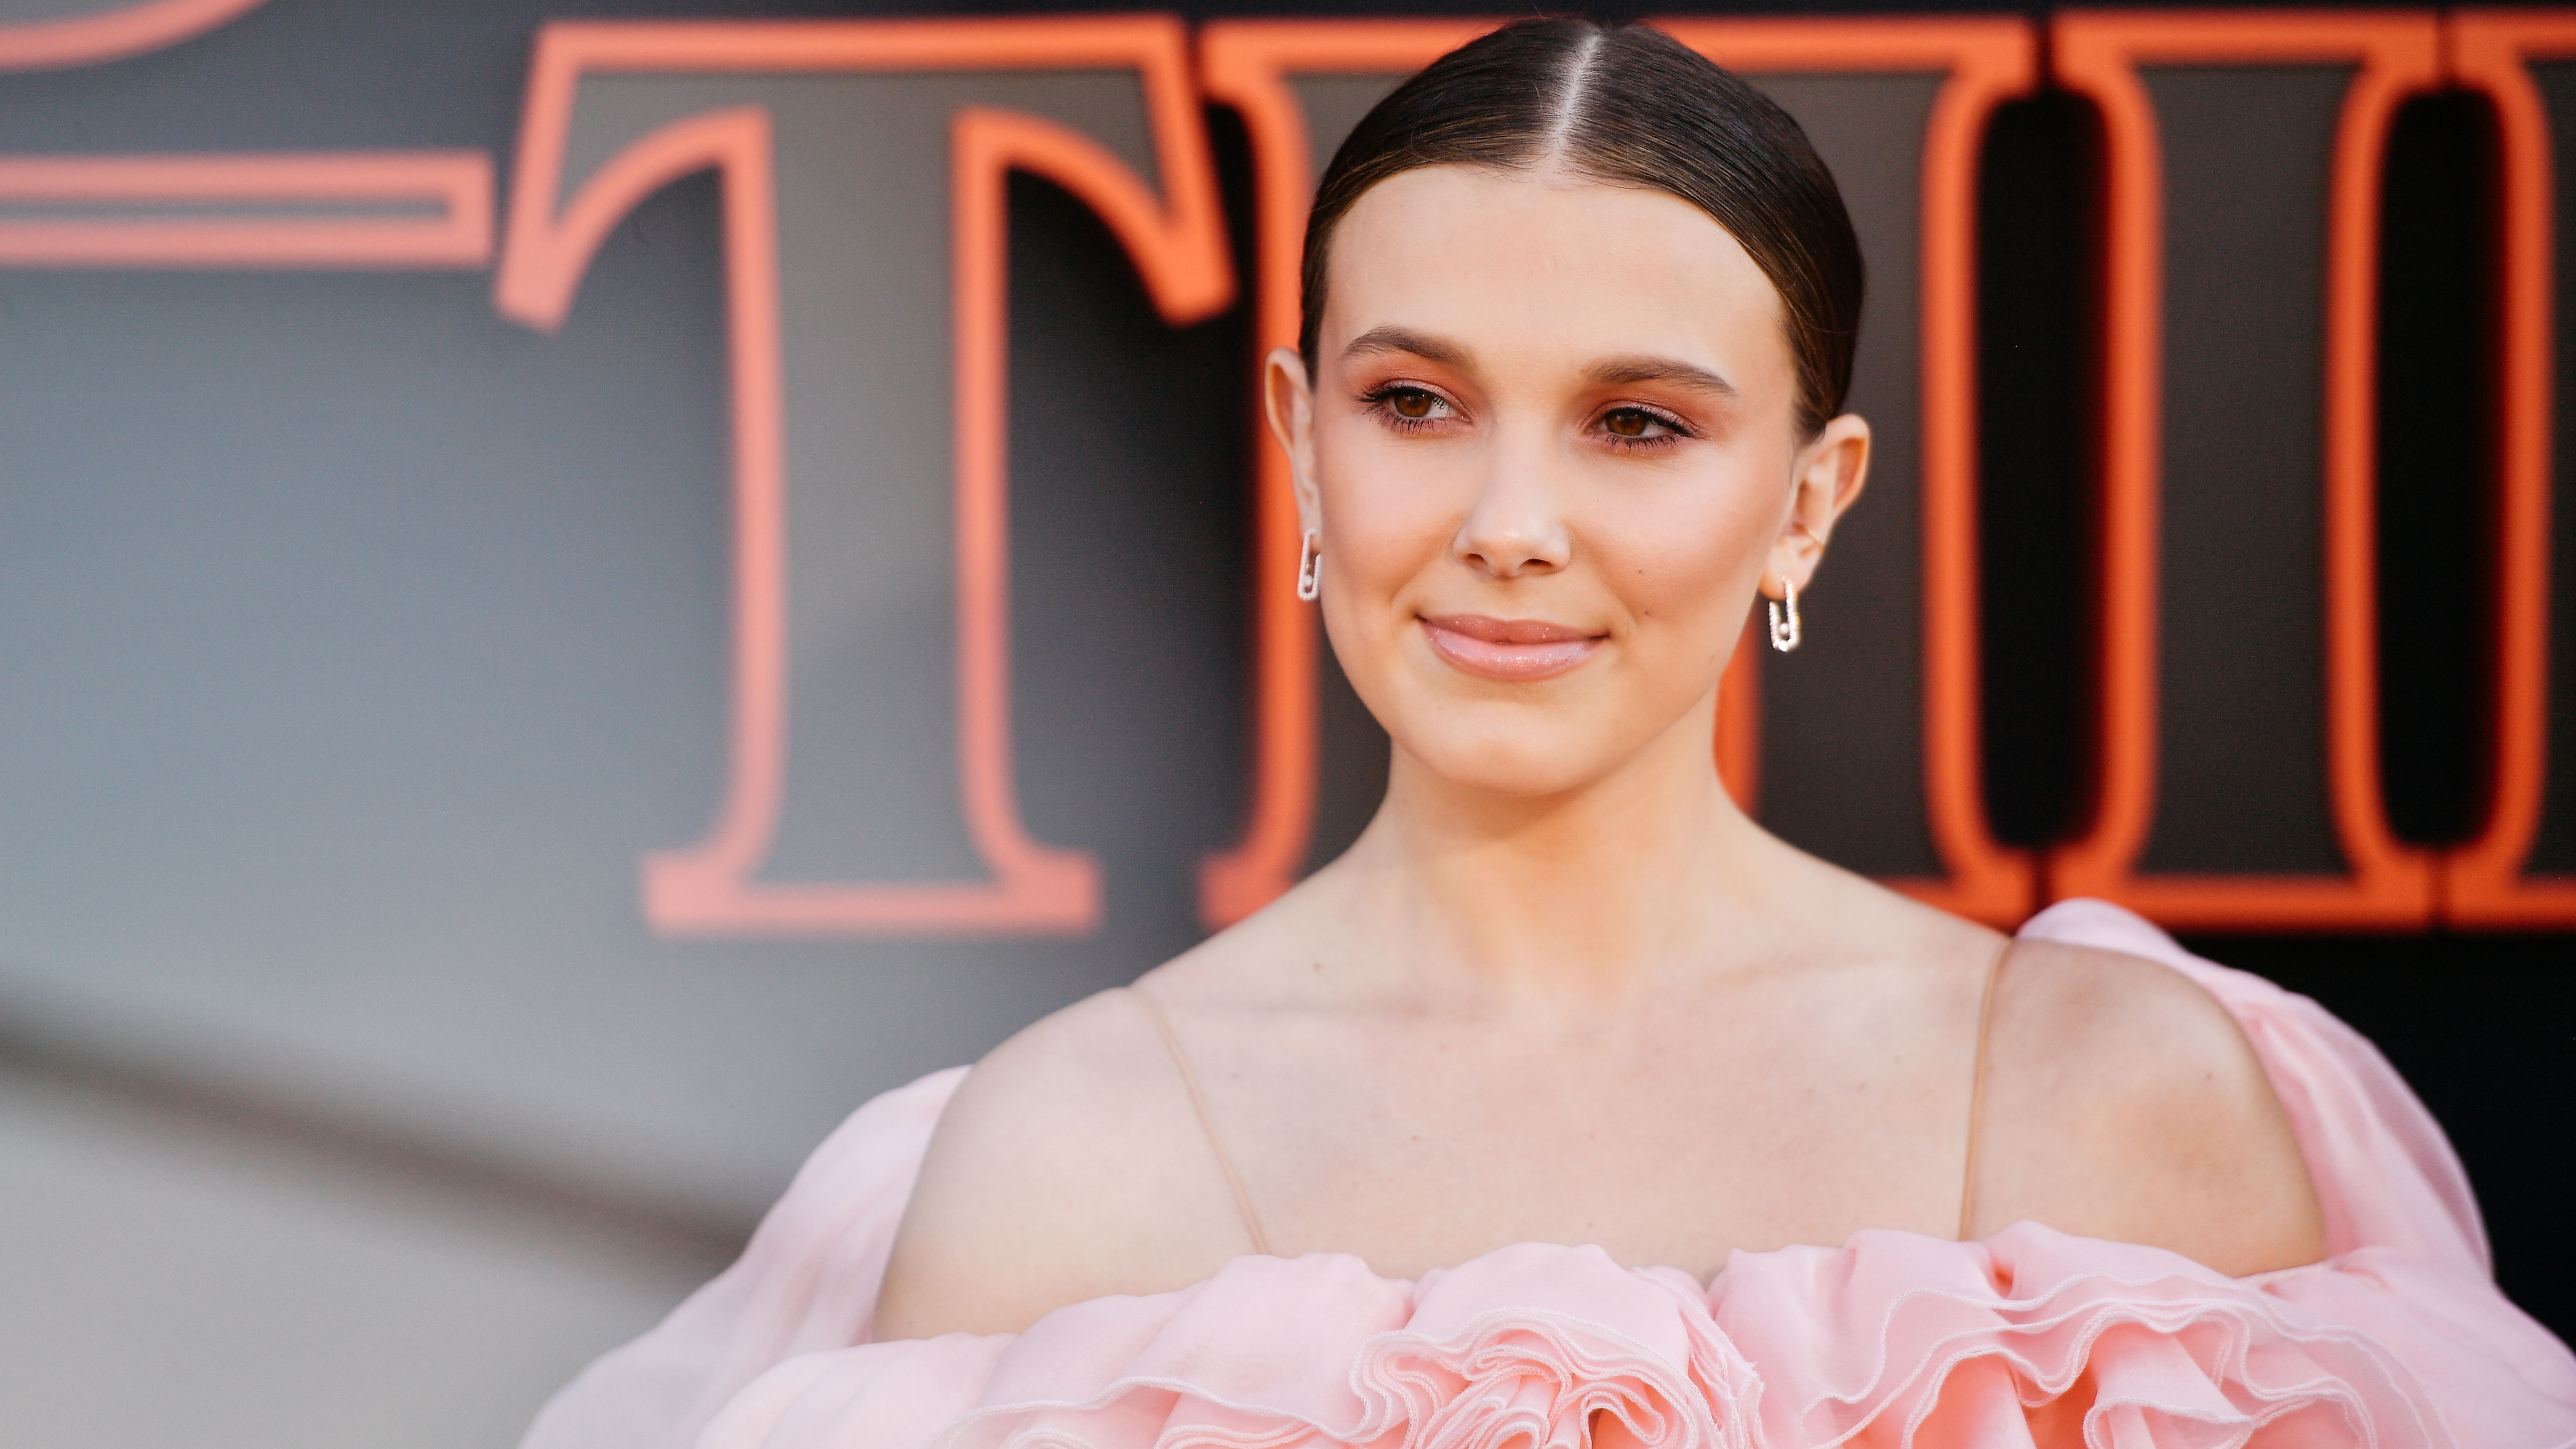 Millie Bobby Brown Is The Latest Celebrity Beauty Entrepreneur